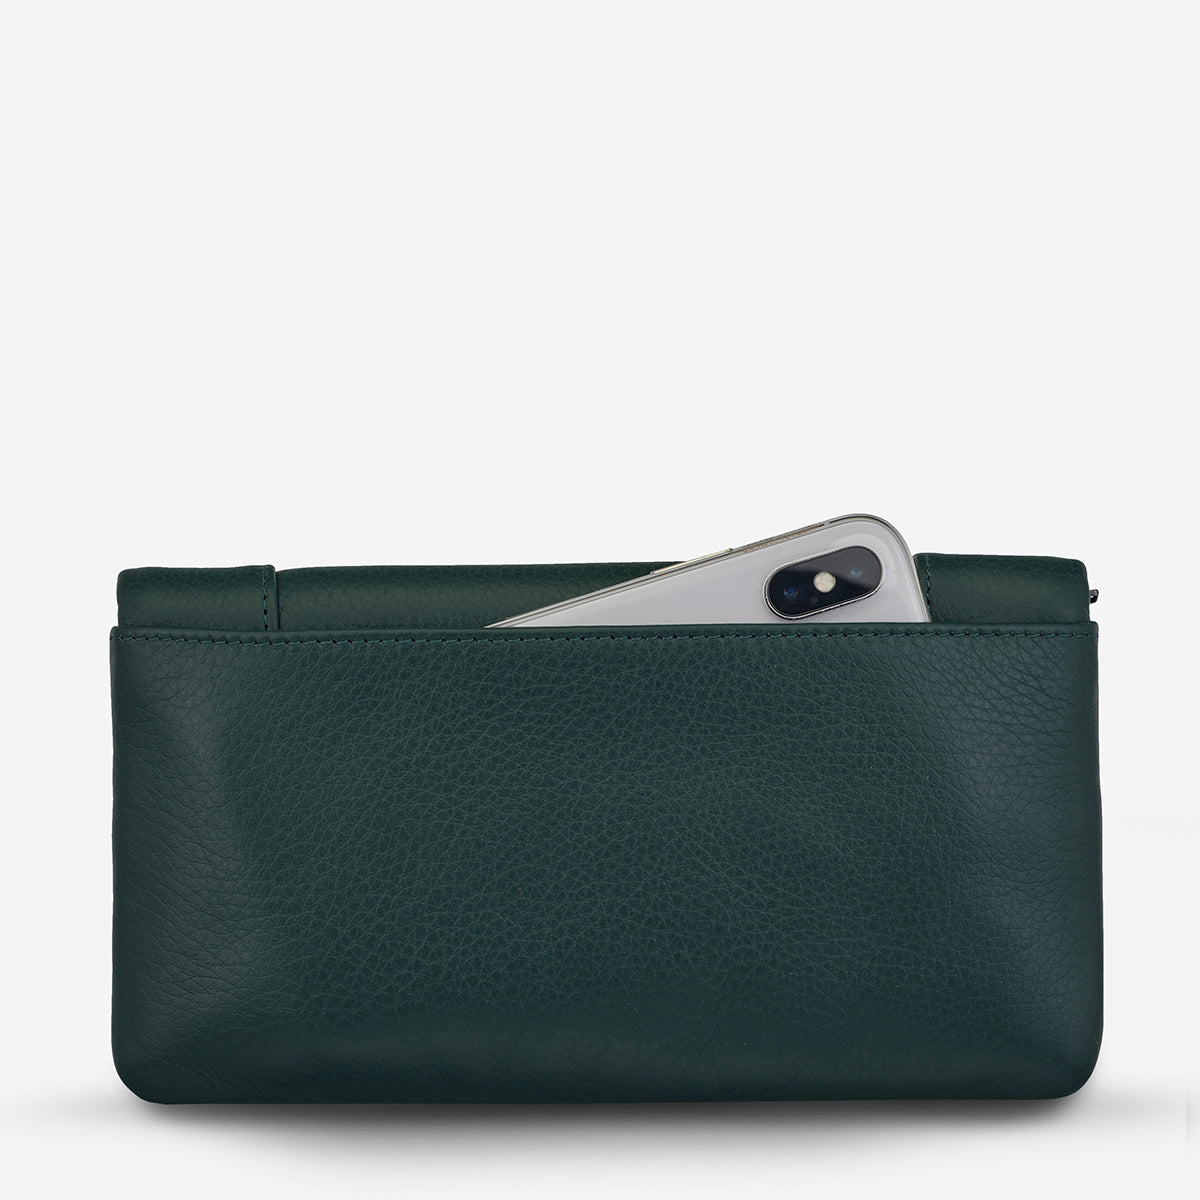 Status Anxiety Some Type Of Love Leather Wallet - Teal